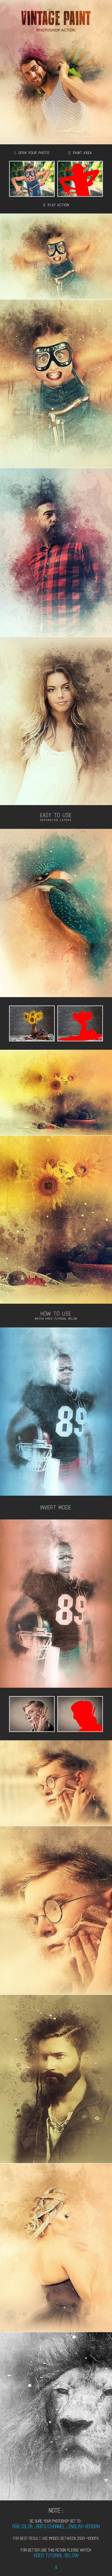 Vintage Paint - Photoshop Action - Photo Effects Actions